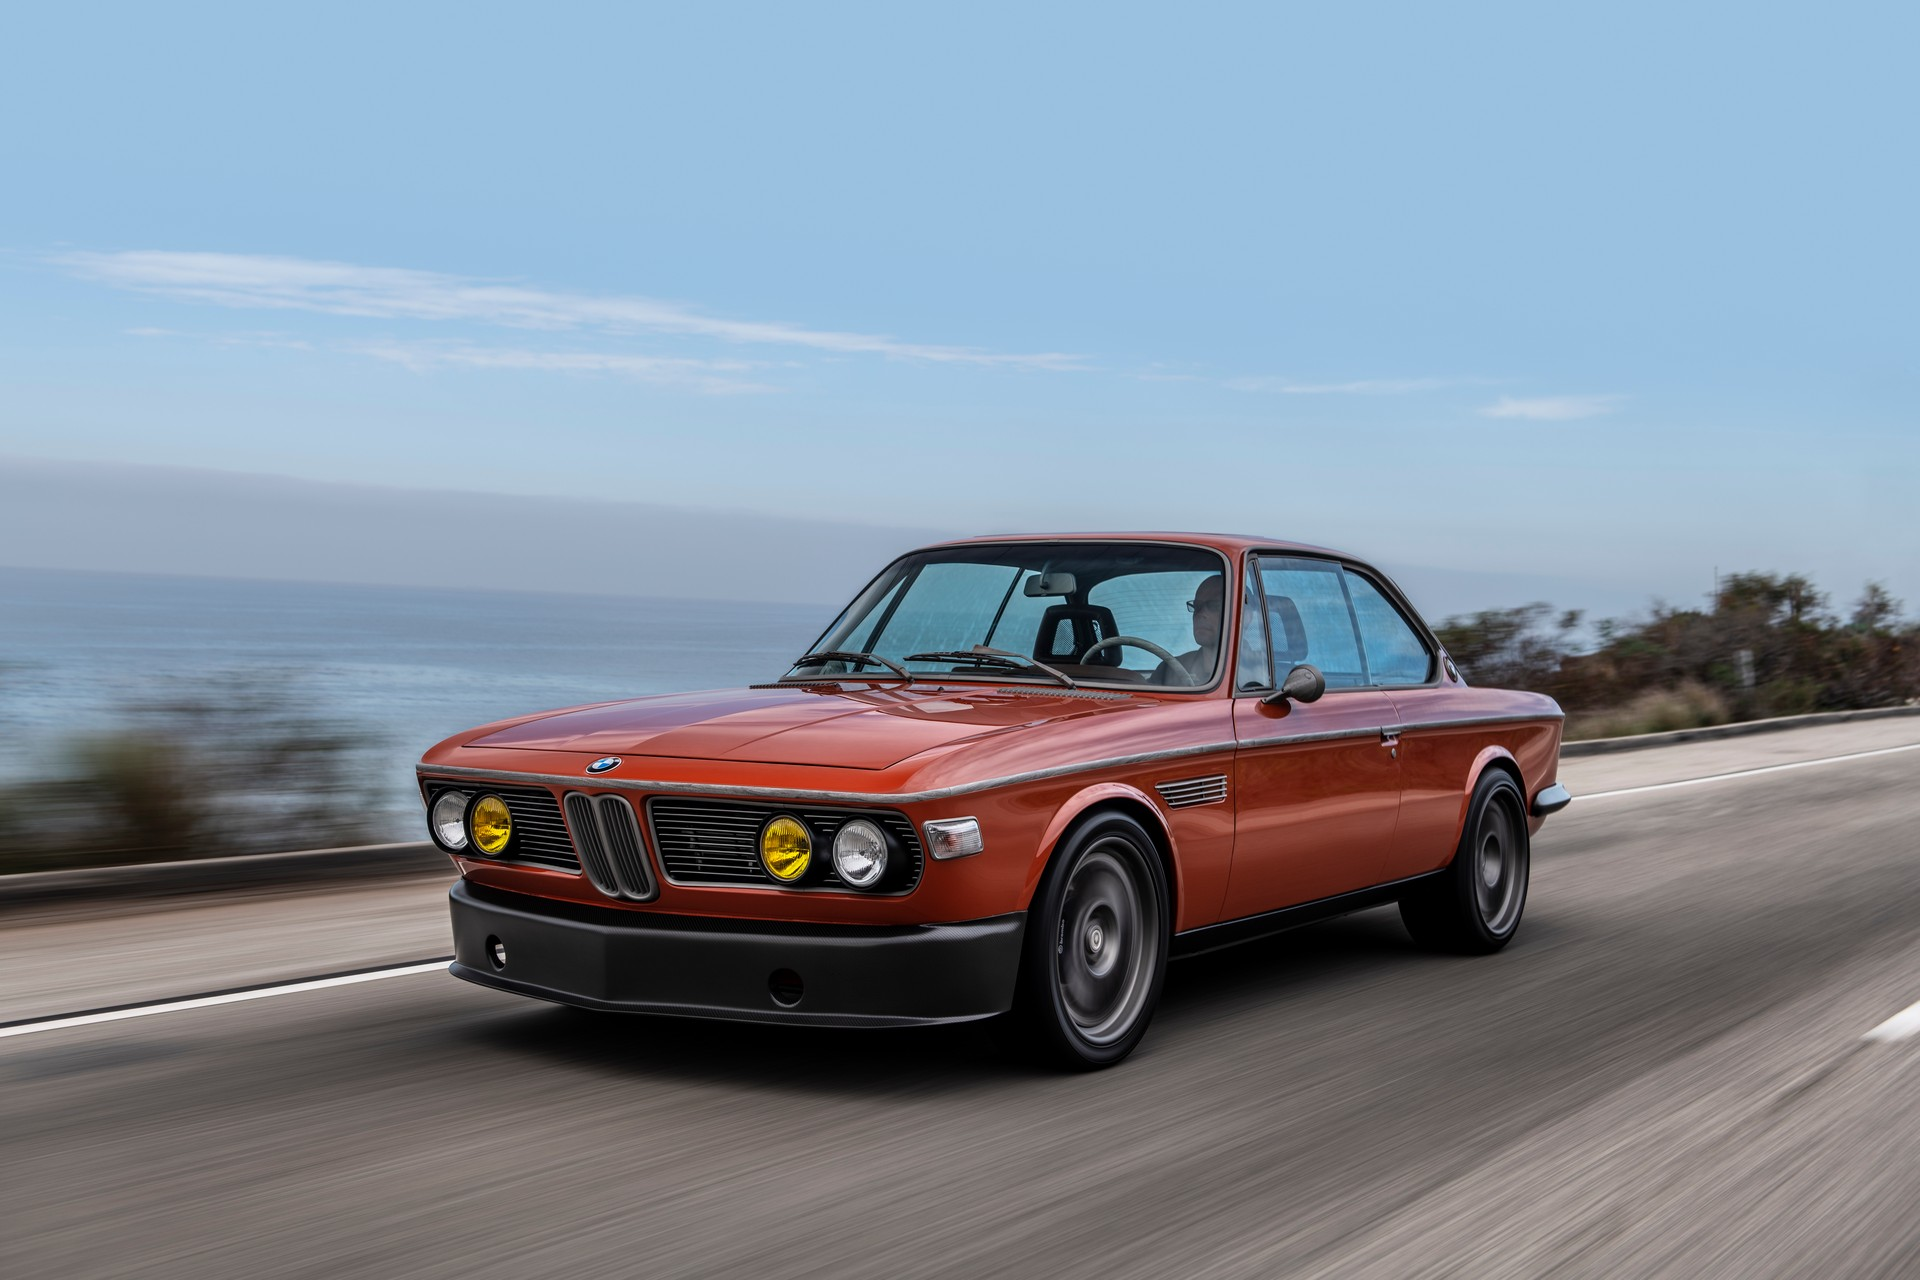 SPEEDKORE-1974-BMW-3.0-CS-1